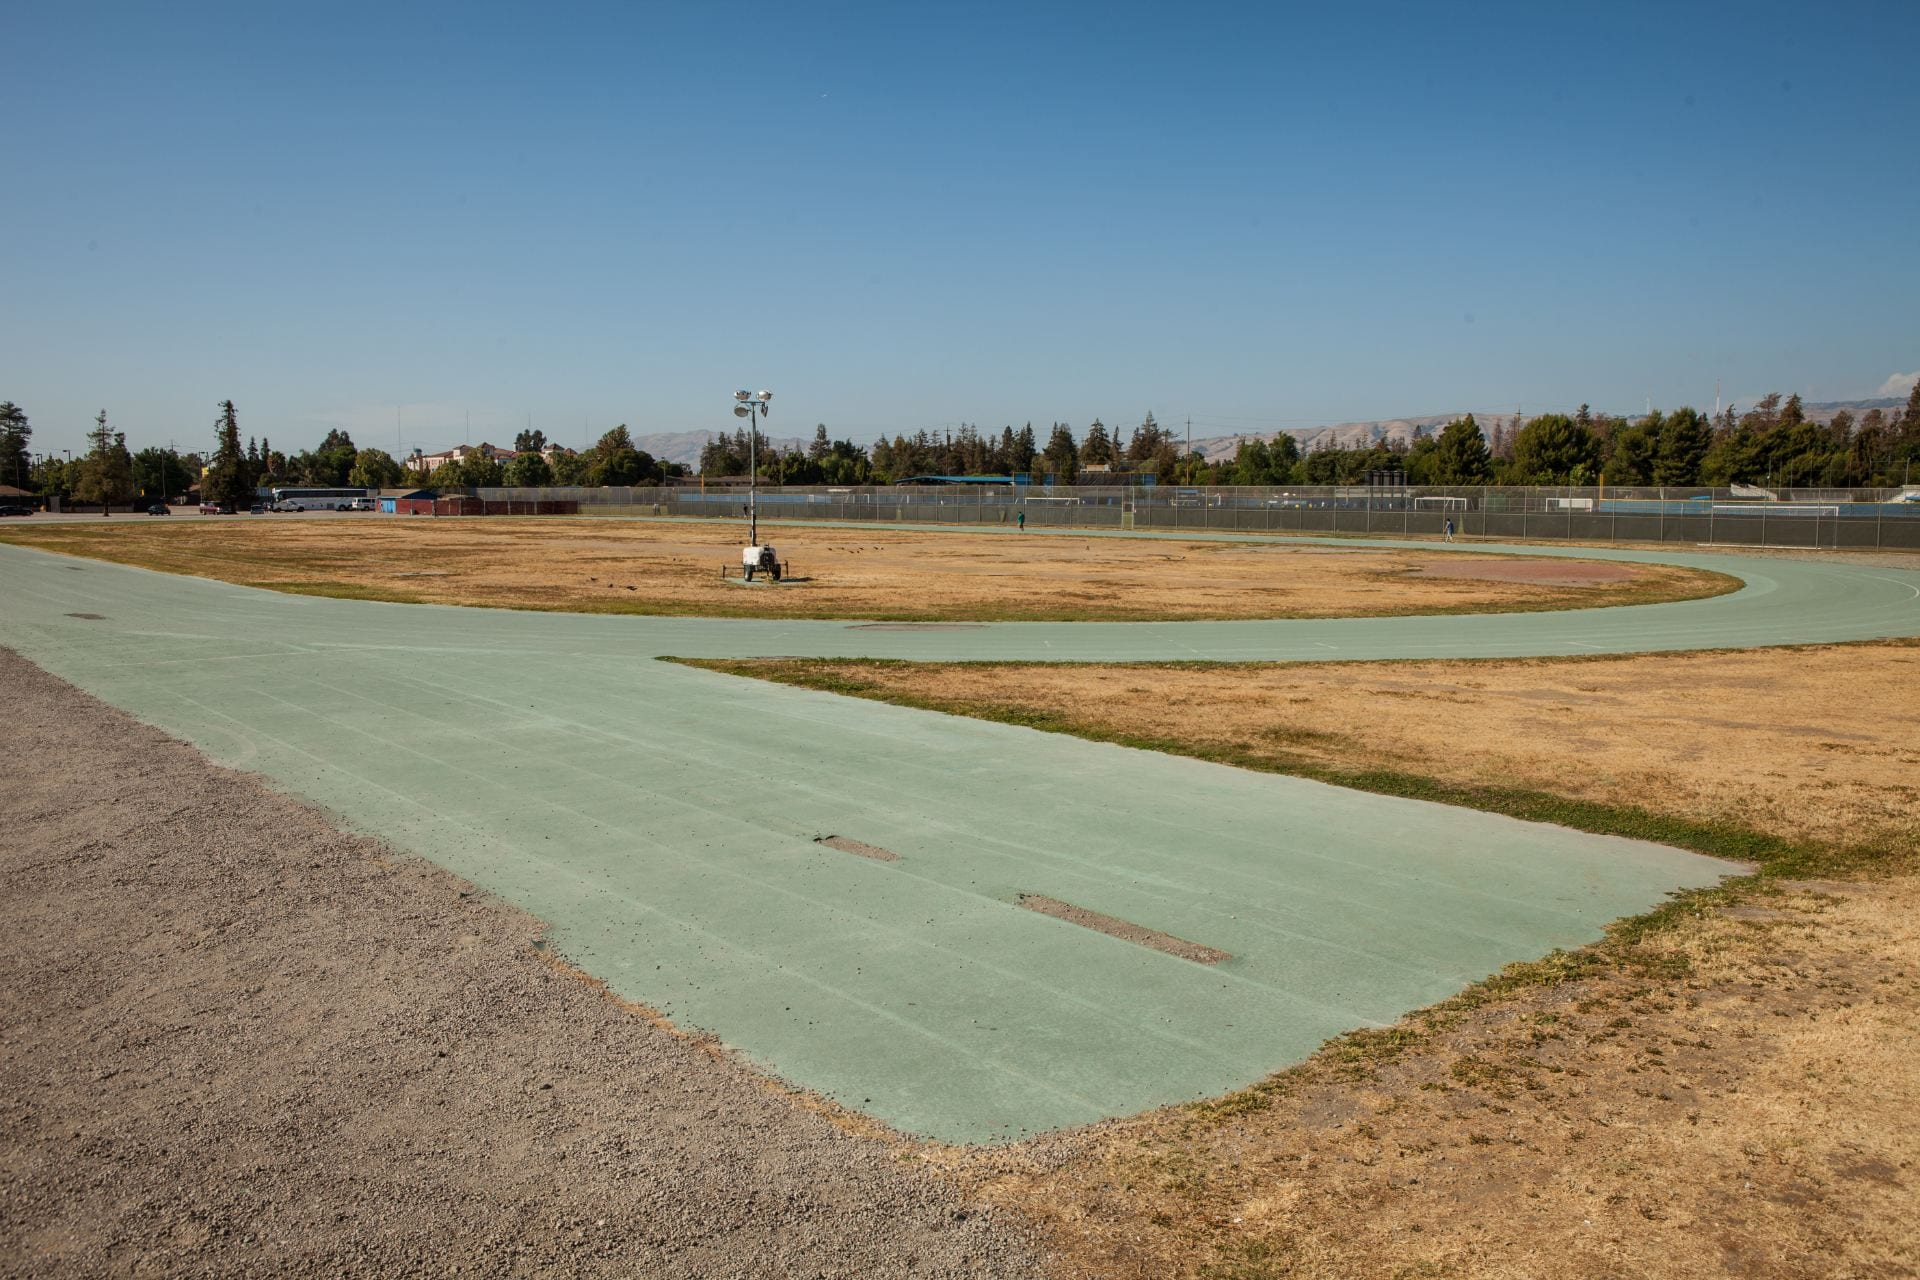 Garage Experts Of The Central Valley San Jose State To Build Recreational Field Tribute To Speed City